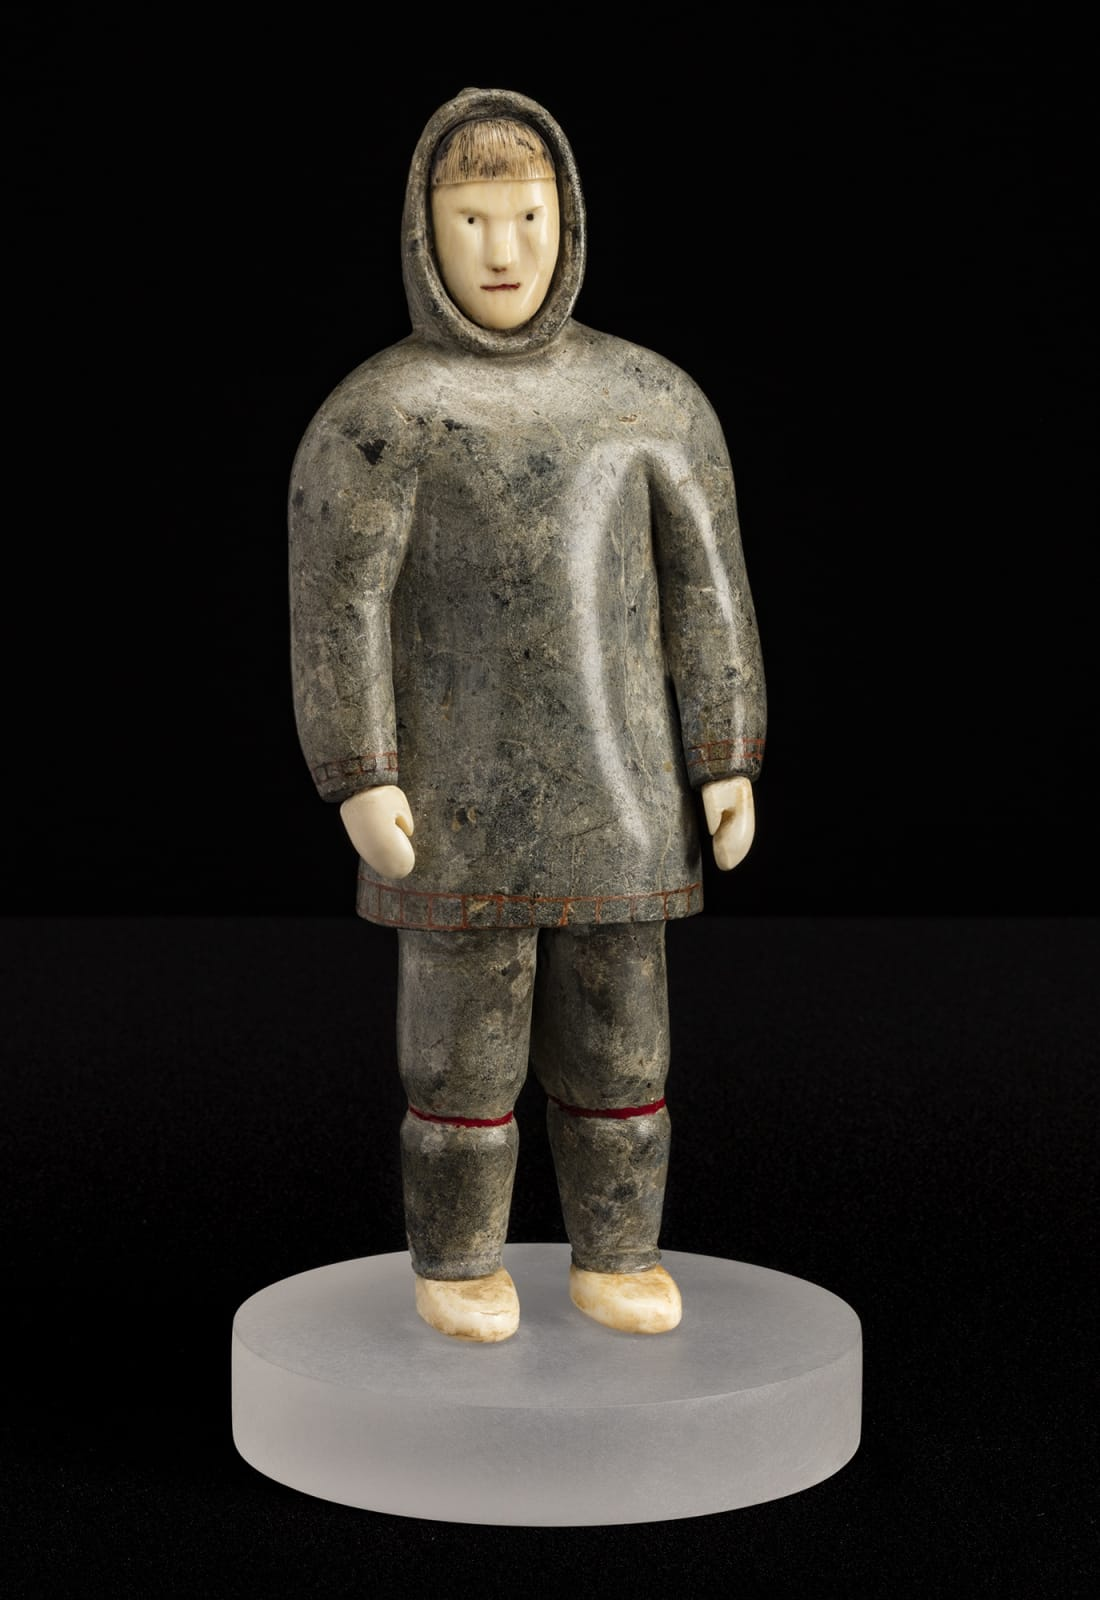 Lot 89 Possibly SHEOKJUK OQUTAQ (1920-1982) m., KIMMIRUT / KINNGAIT (LAKE HARBOUR / CAPE DORSET) Standing Man, mid 1950s stone, ivory, red inlay, and black colouring, 9.75 x 3.75 x 2.5 in (24.8 x 9.5 x 6.3 cm) not including lucite base Estimate: $4,500— $6,500